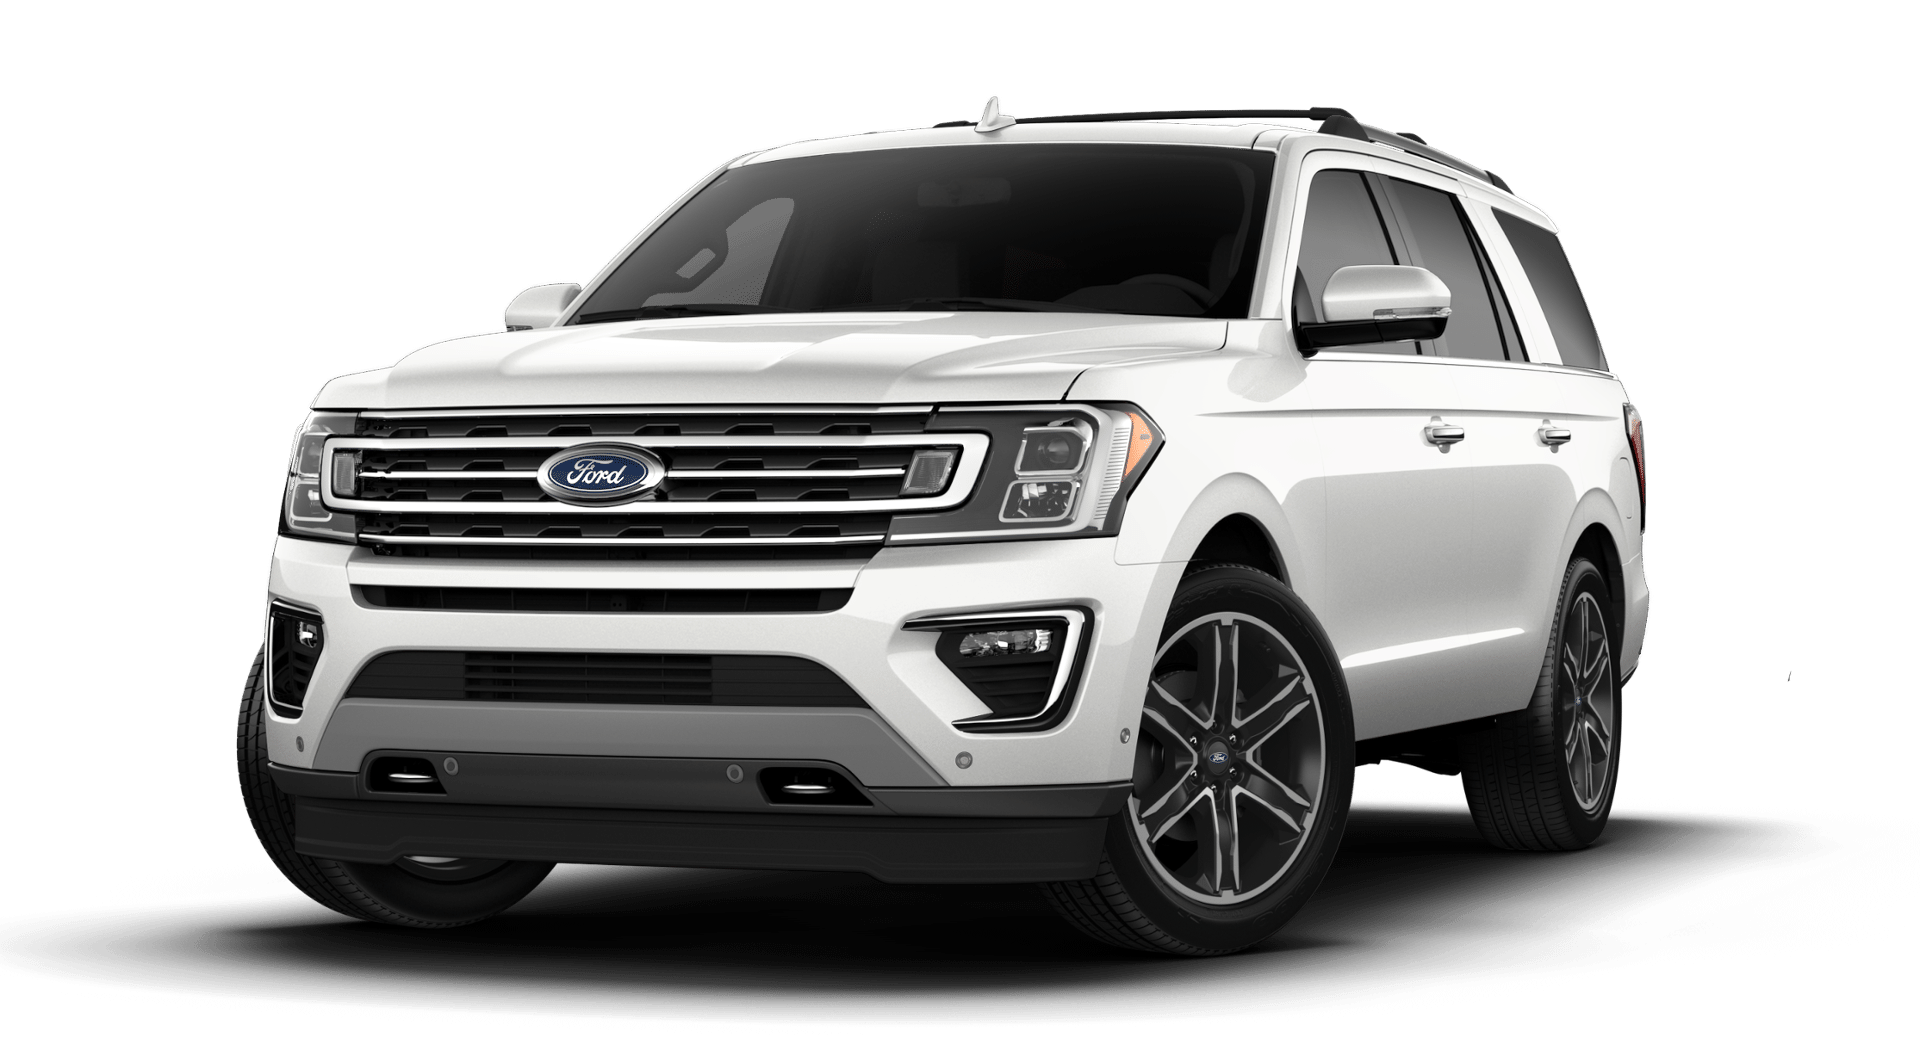 2019 Ford Expedition Limited For Sale In Edinburg Tx Near Mcallen Incentives Rebates Specials Lease Offers Ford Expedition Ford Suv Ford Trucks